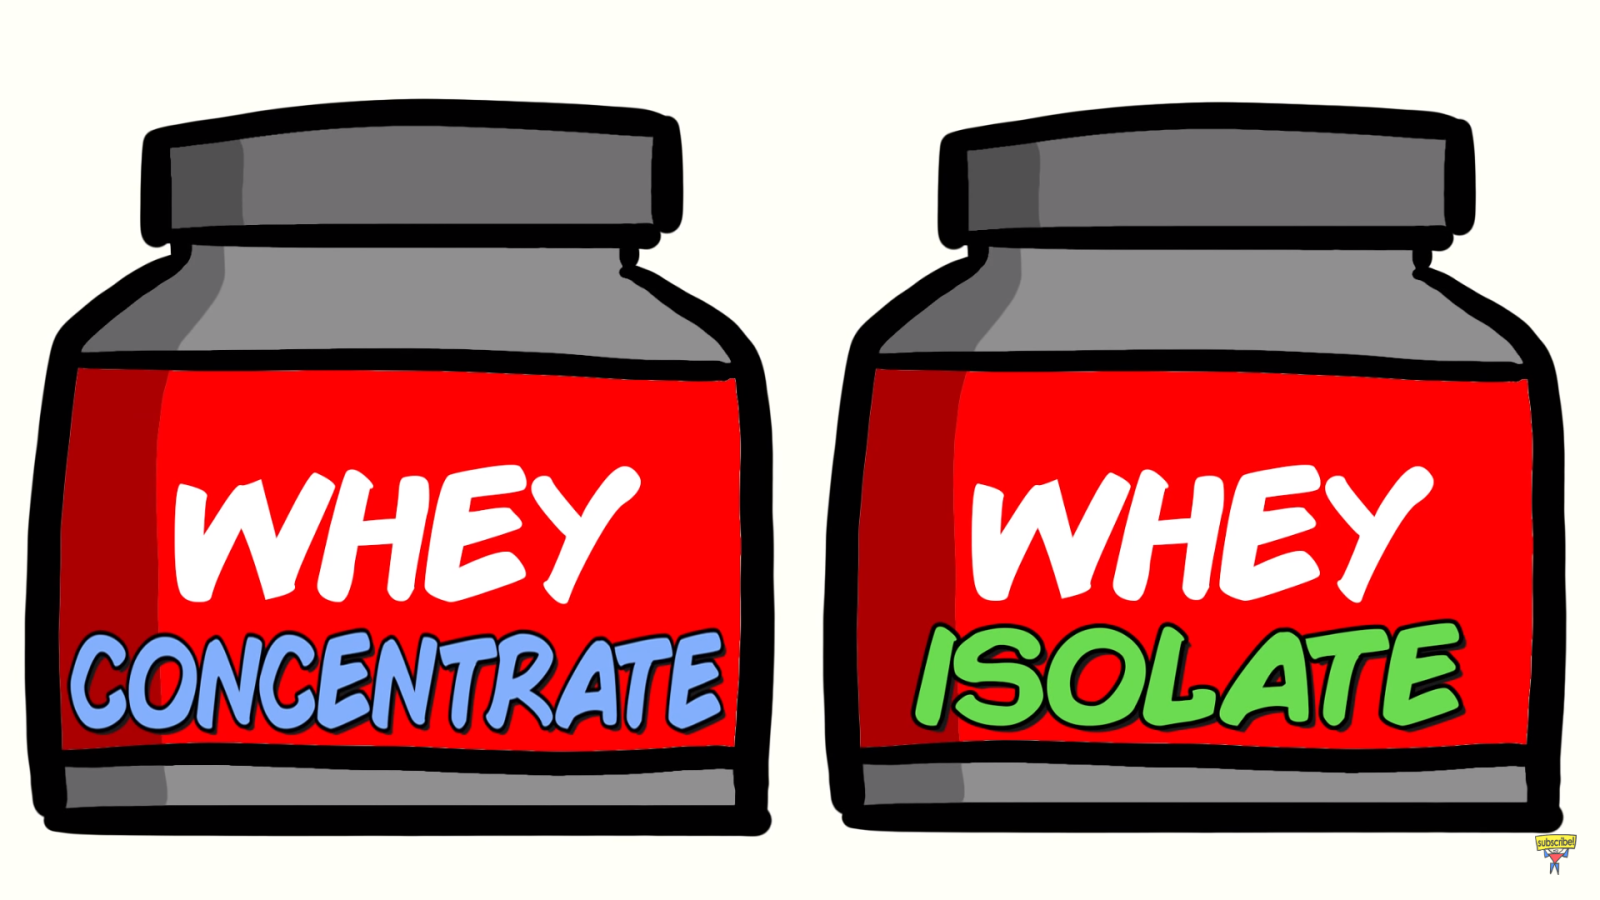 Whey Concentrate vs Whey Isolate ?